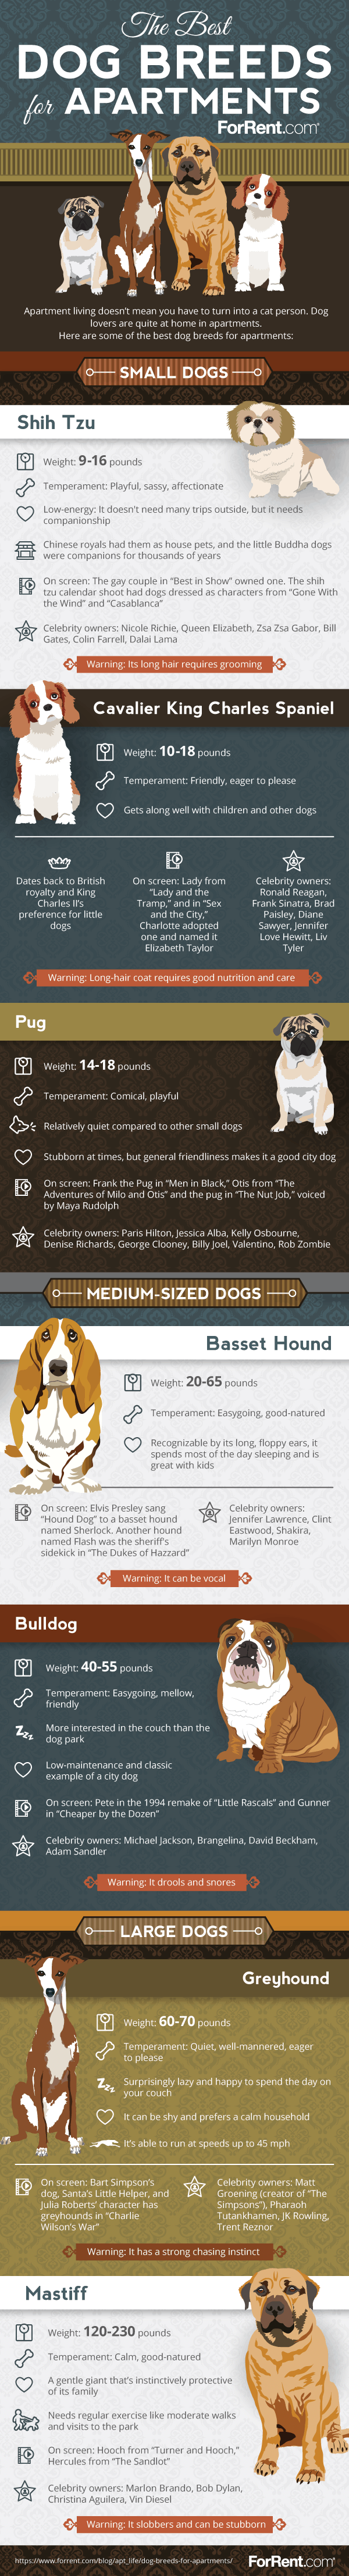 With These Questions In Mind Forrent Compiled This Infographic Showcasing The Best Small Medium And Large Breeds For Apartment Living